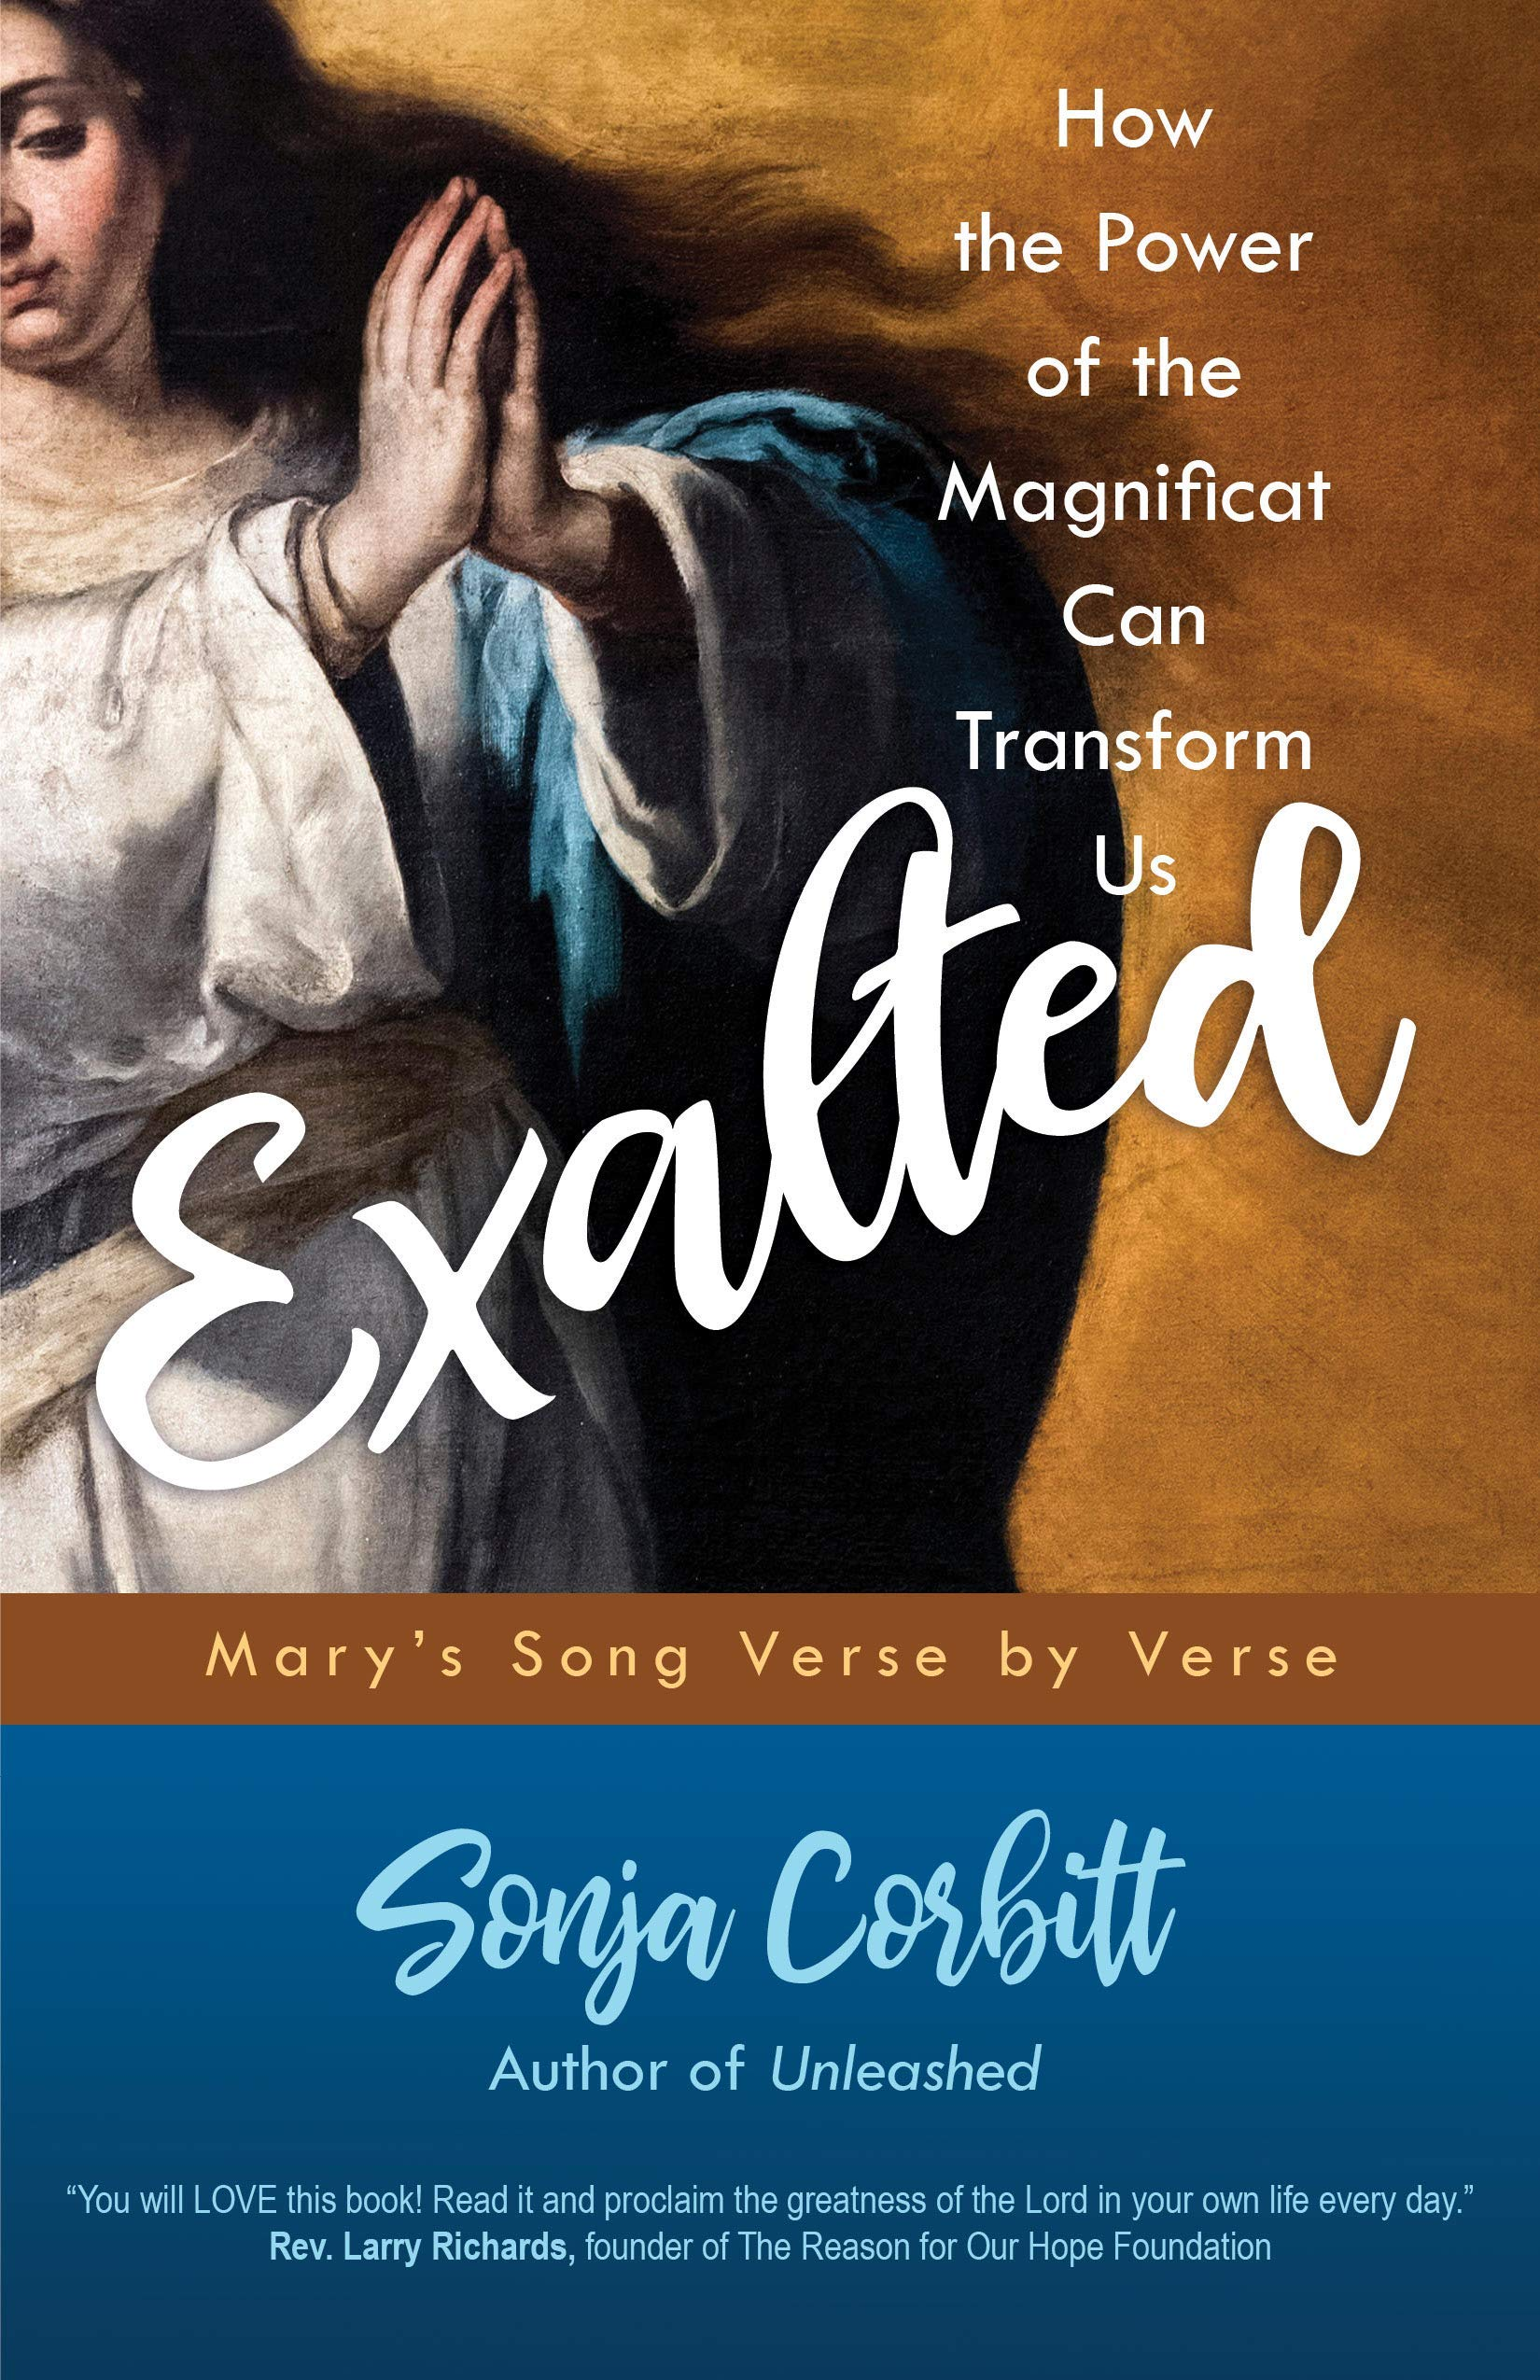 The Canticles of Christmas: Singing the songs of Zechariah, Mary, the angels, and Simeon.